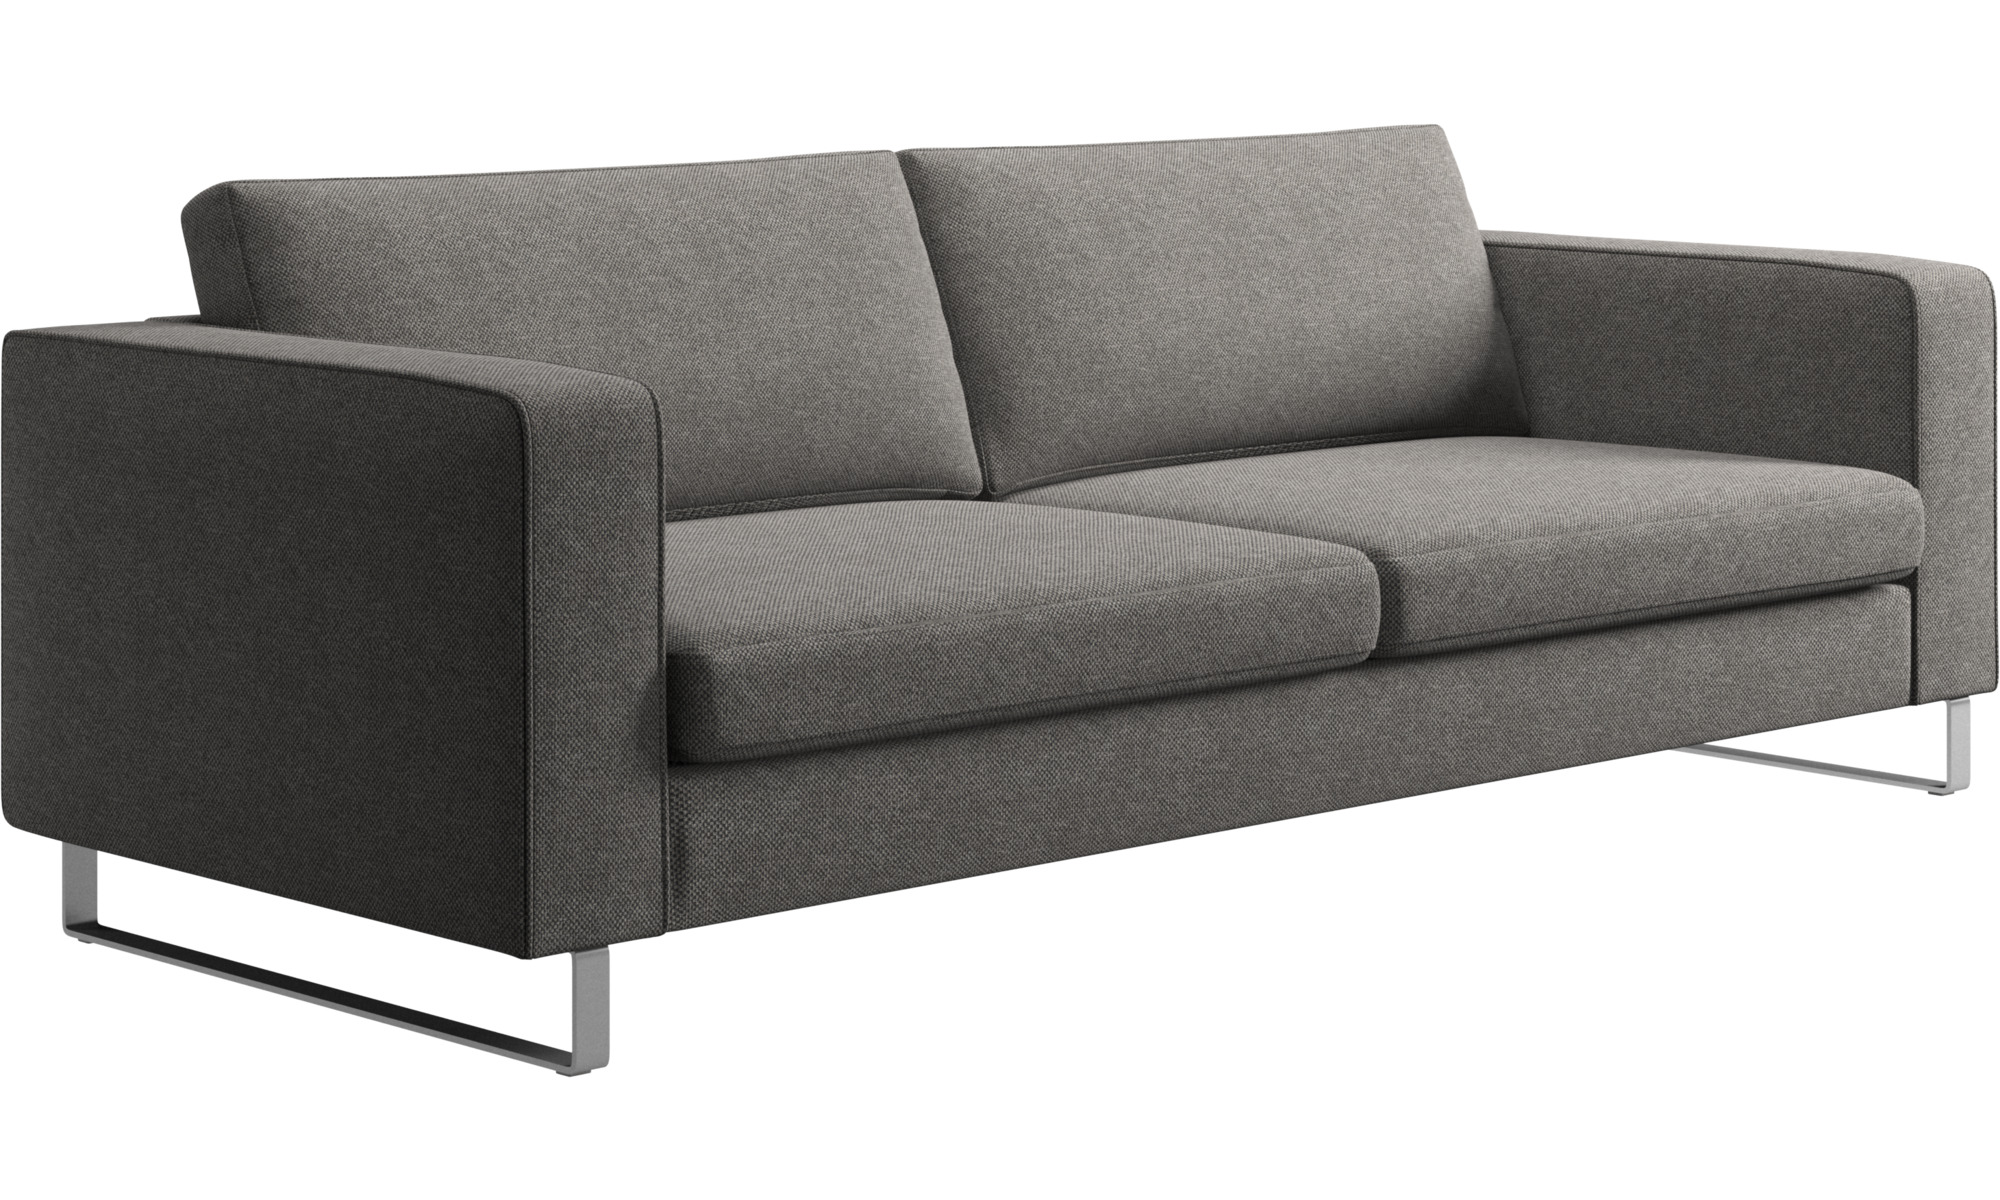 black leather sofa set price in india sectional sofas colorado springs 3 2 onkel seater normann copenhagen